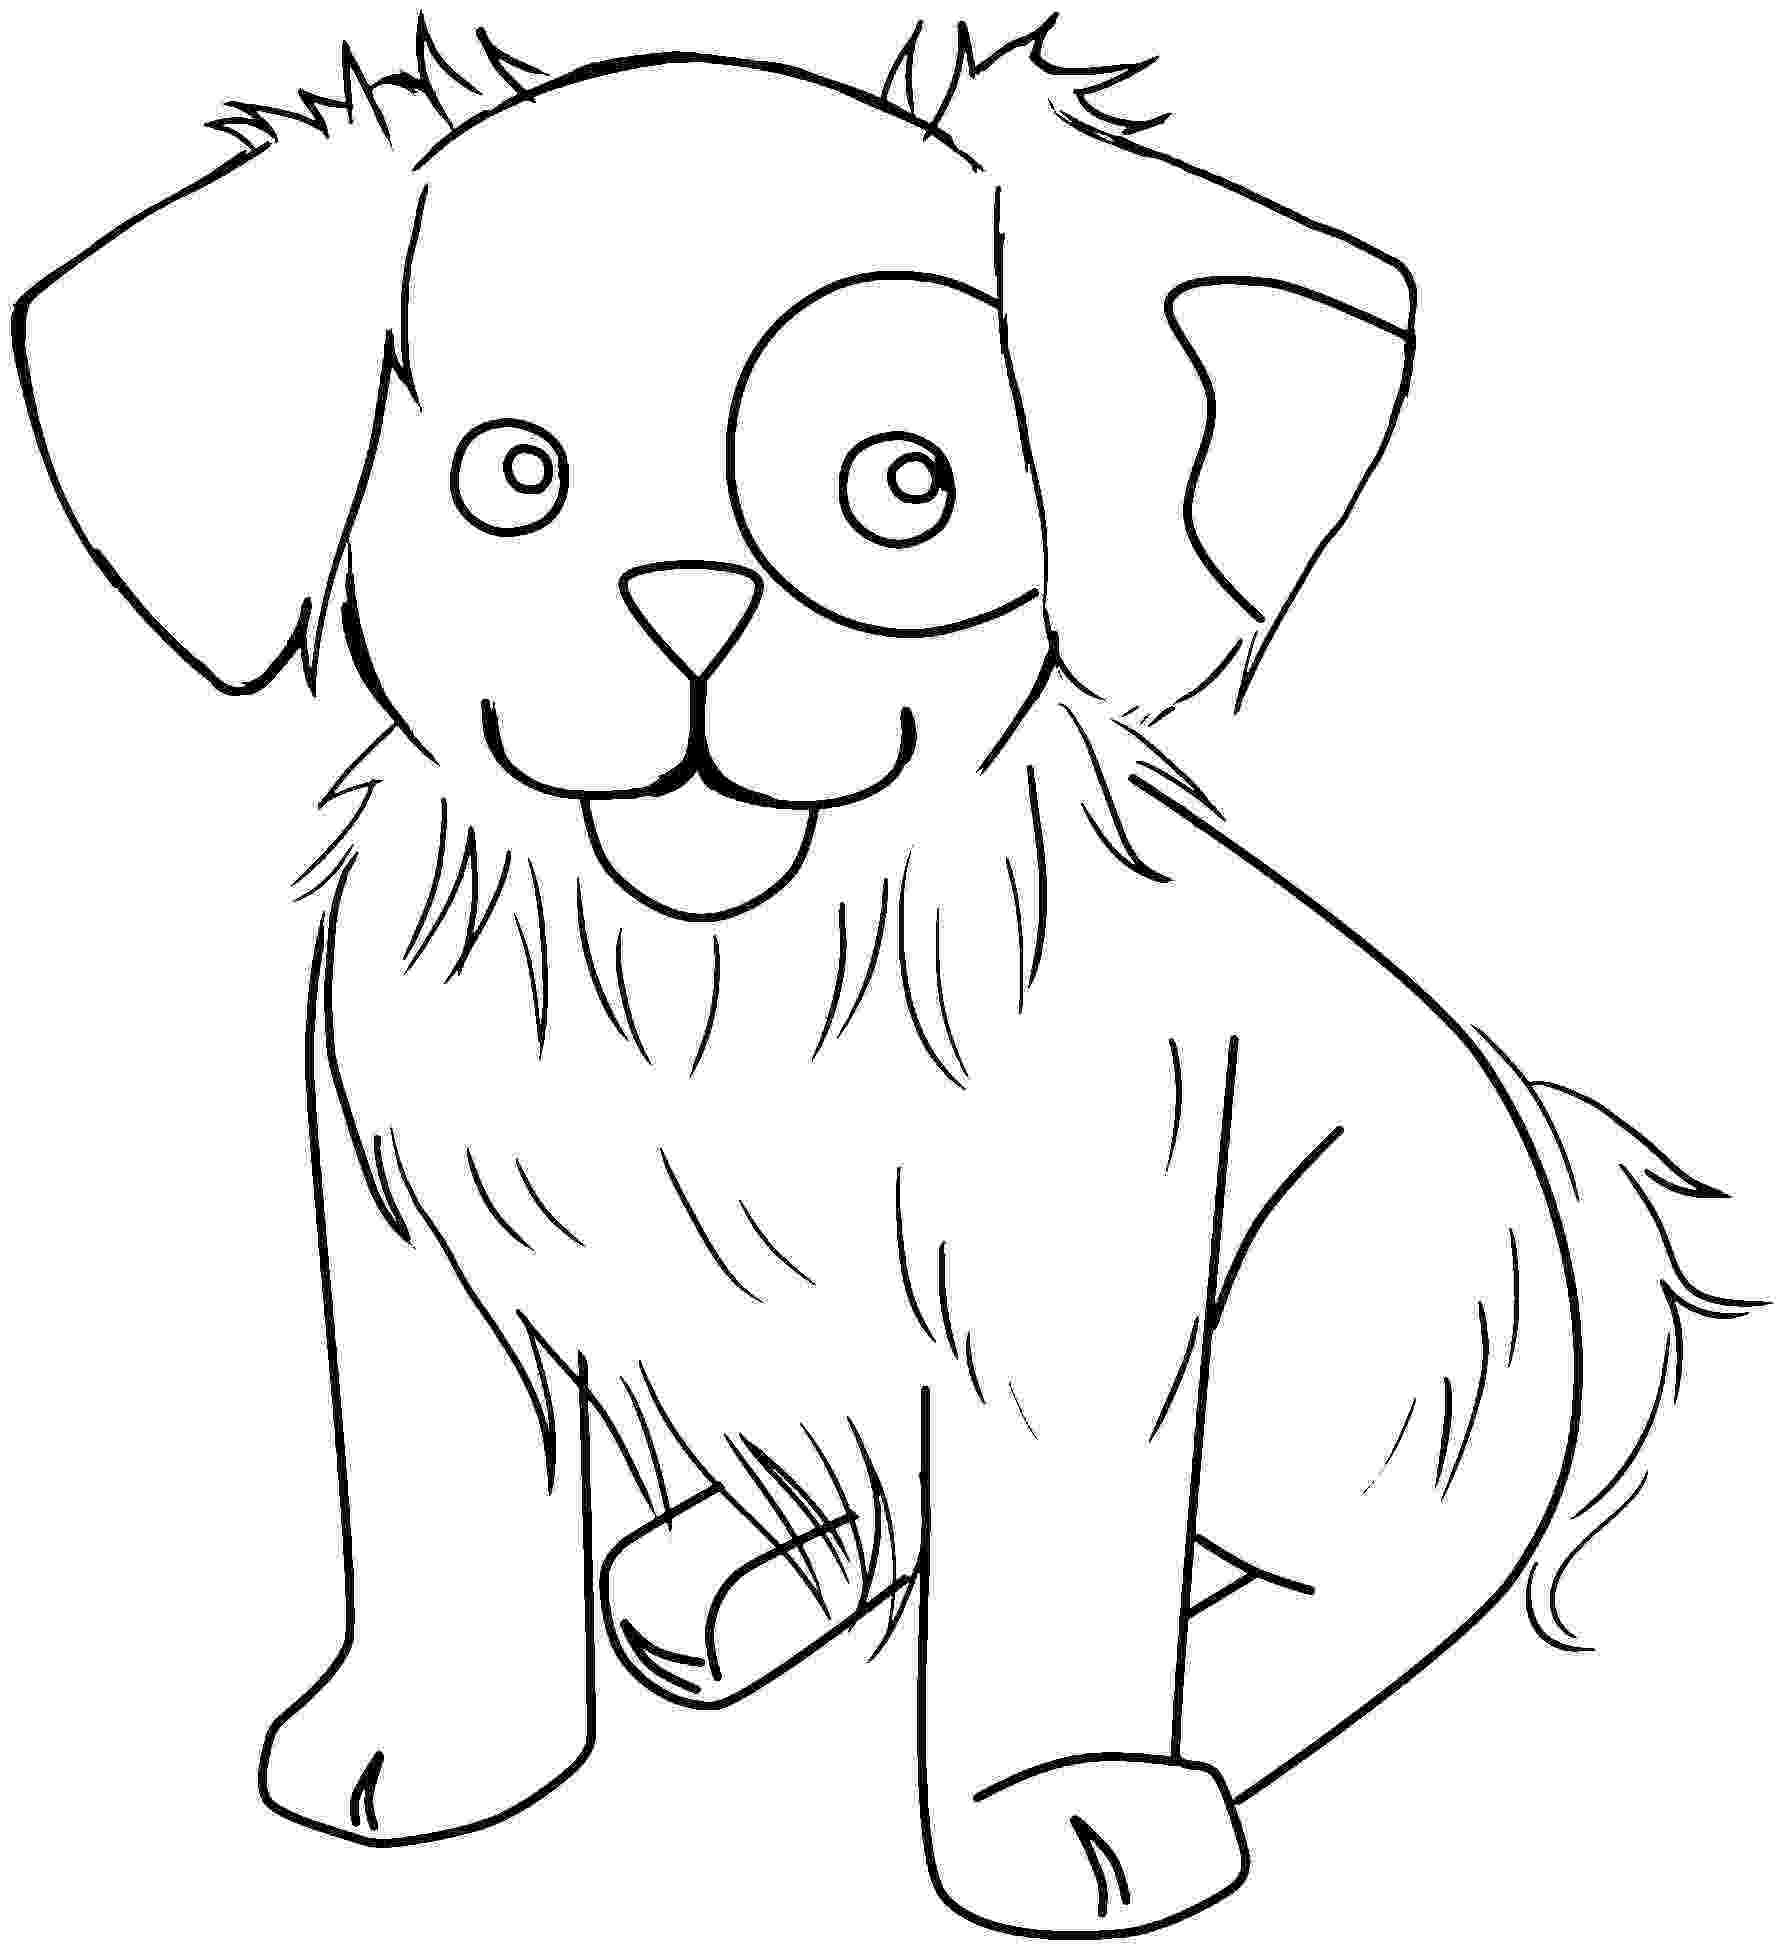 animal coloring pages to print free printable cute animal coloring pages coloring home animal to coloring pages print